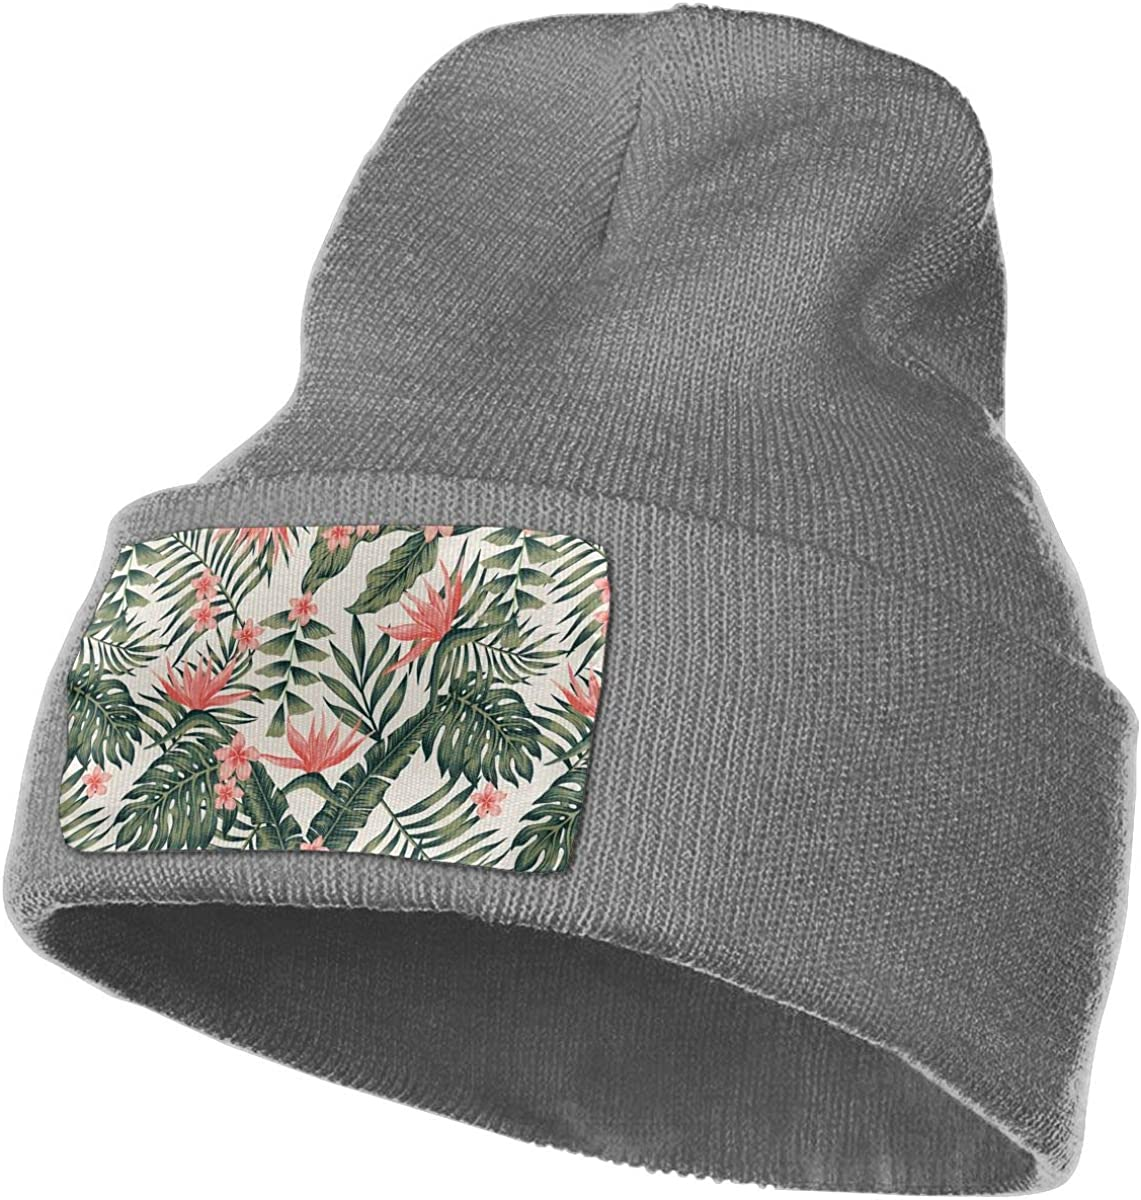 Tropical Brown Green Leaves and Flower and Bird Paradise Unisex Fashion Knitted Hat Luxury Hip-Hop Cap